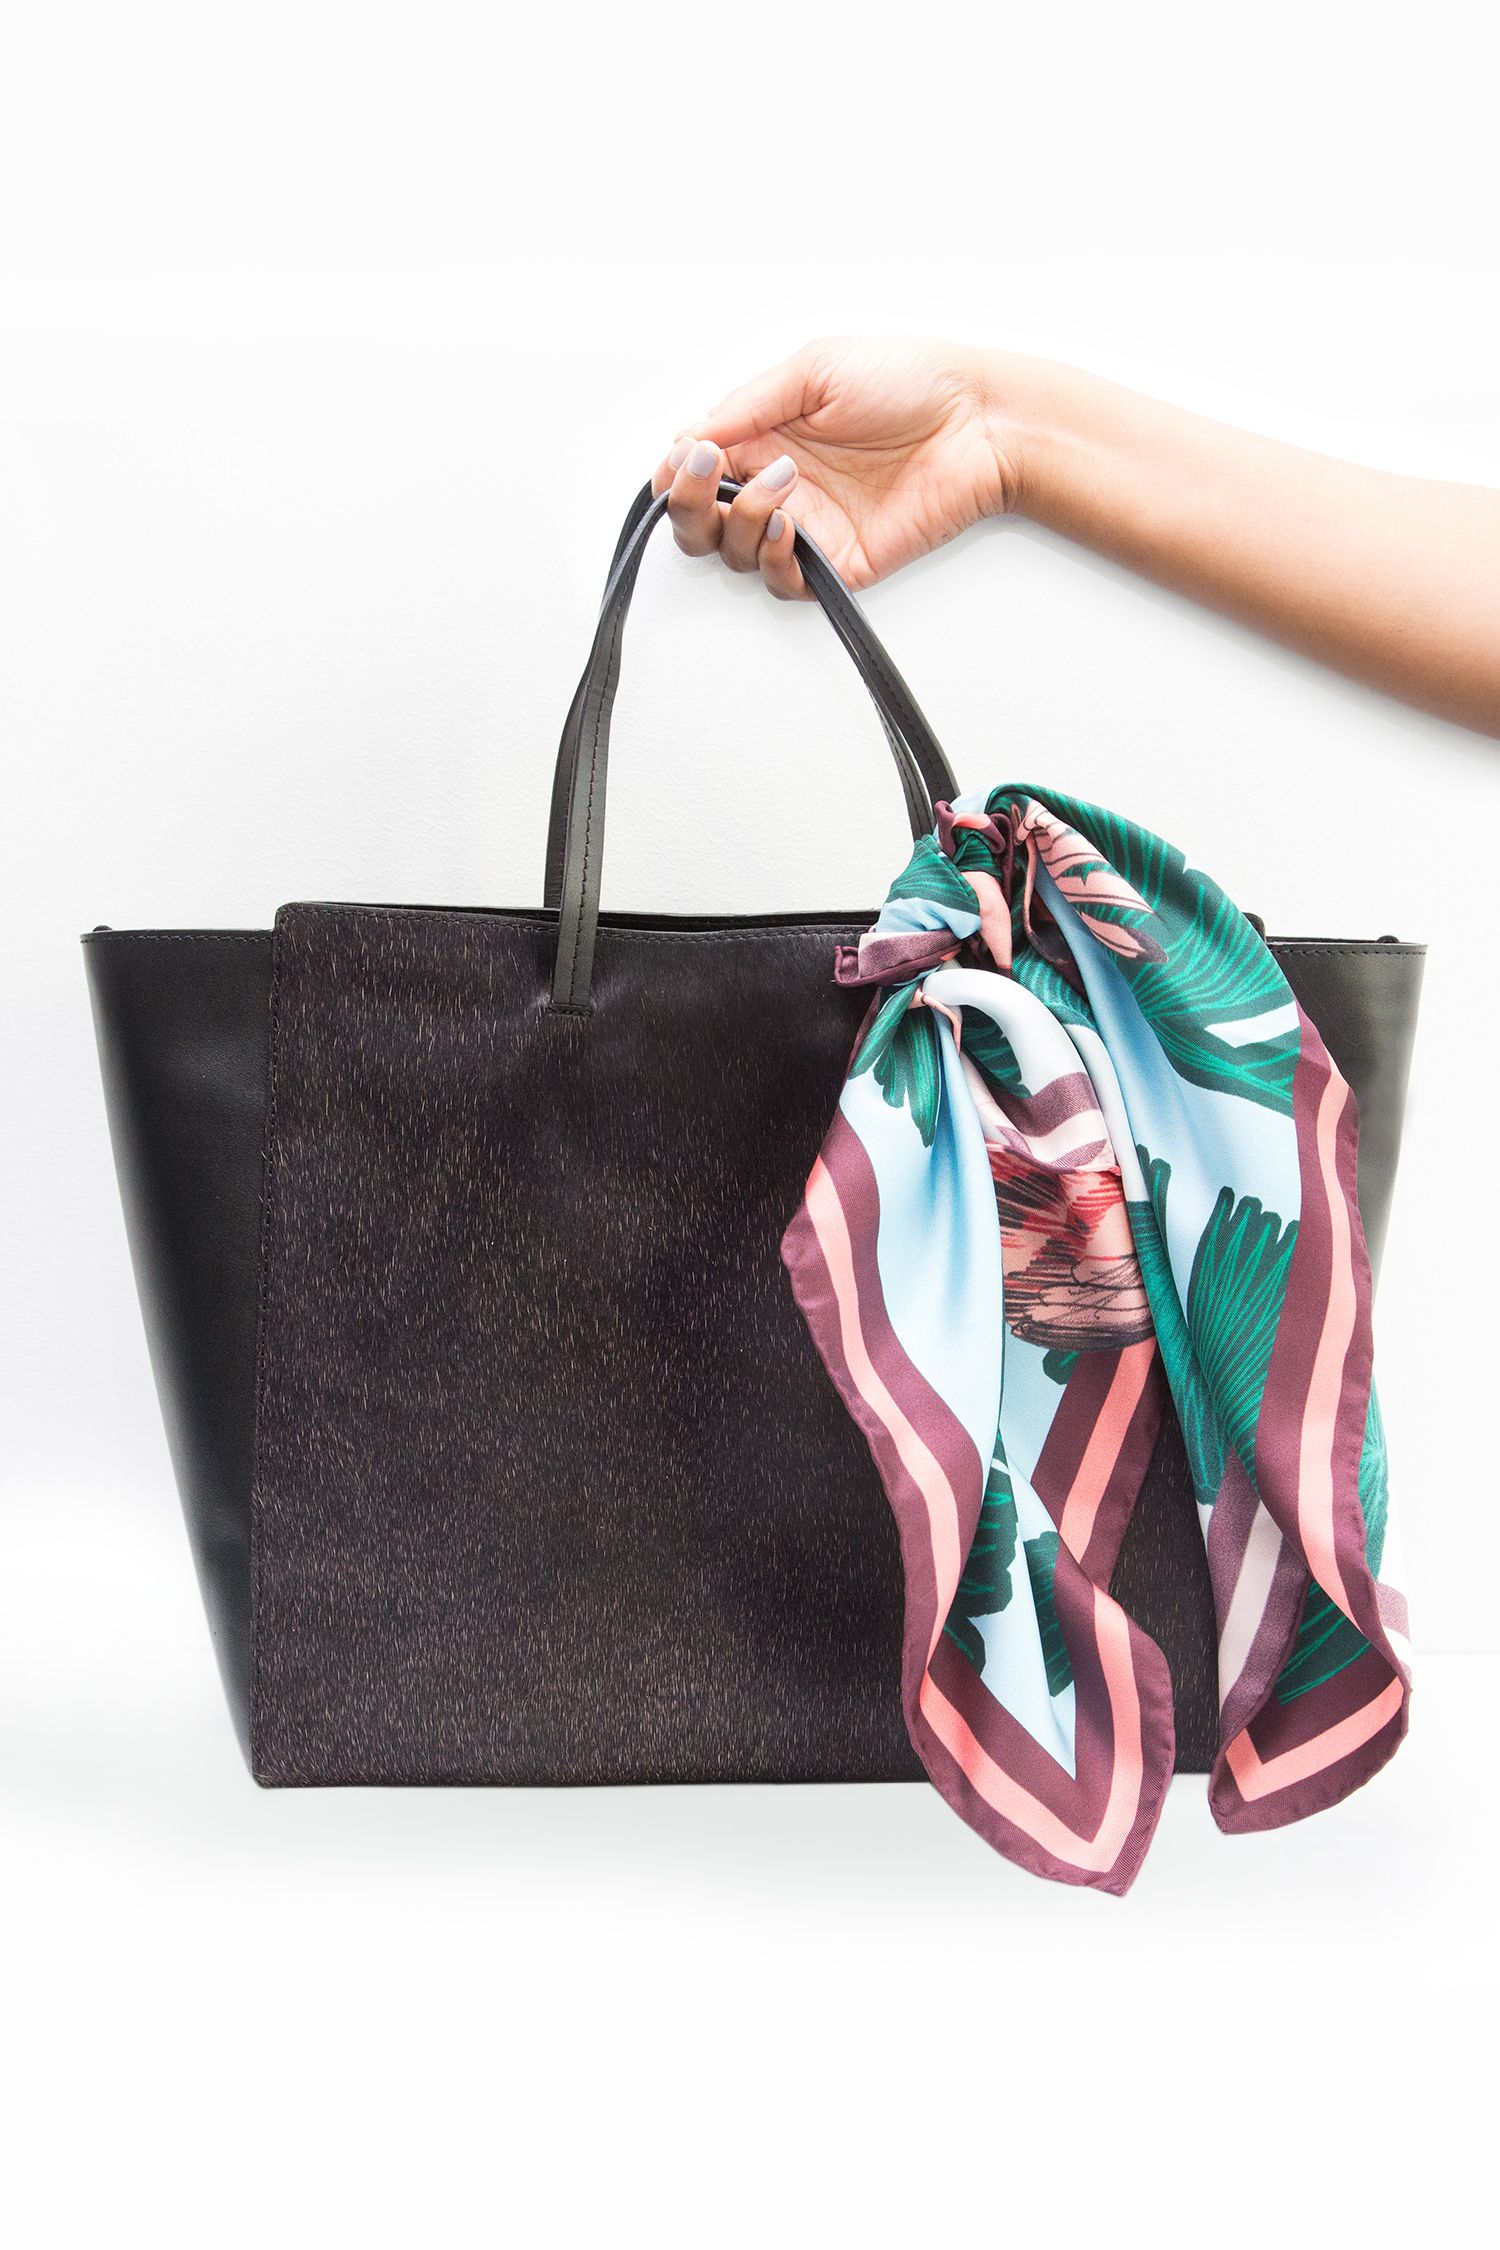 68725d2b5f19 4 Fast Ways to Turn Your Boring Black Bag into Something Way More ...